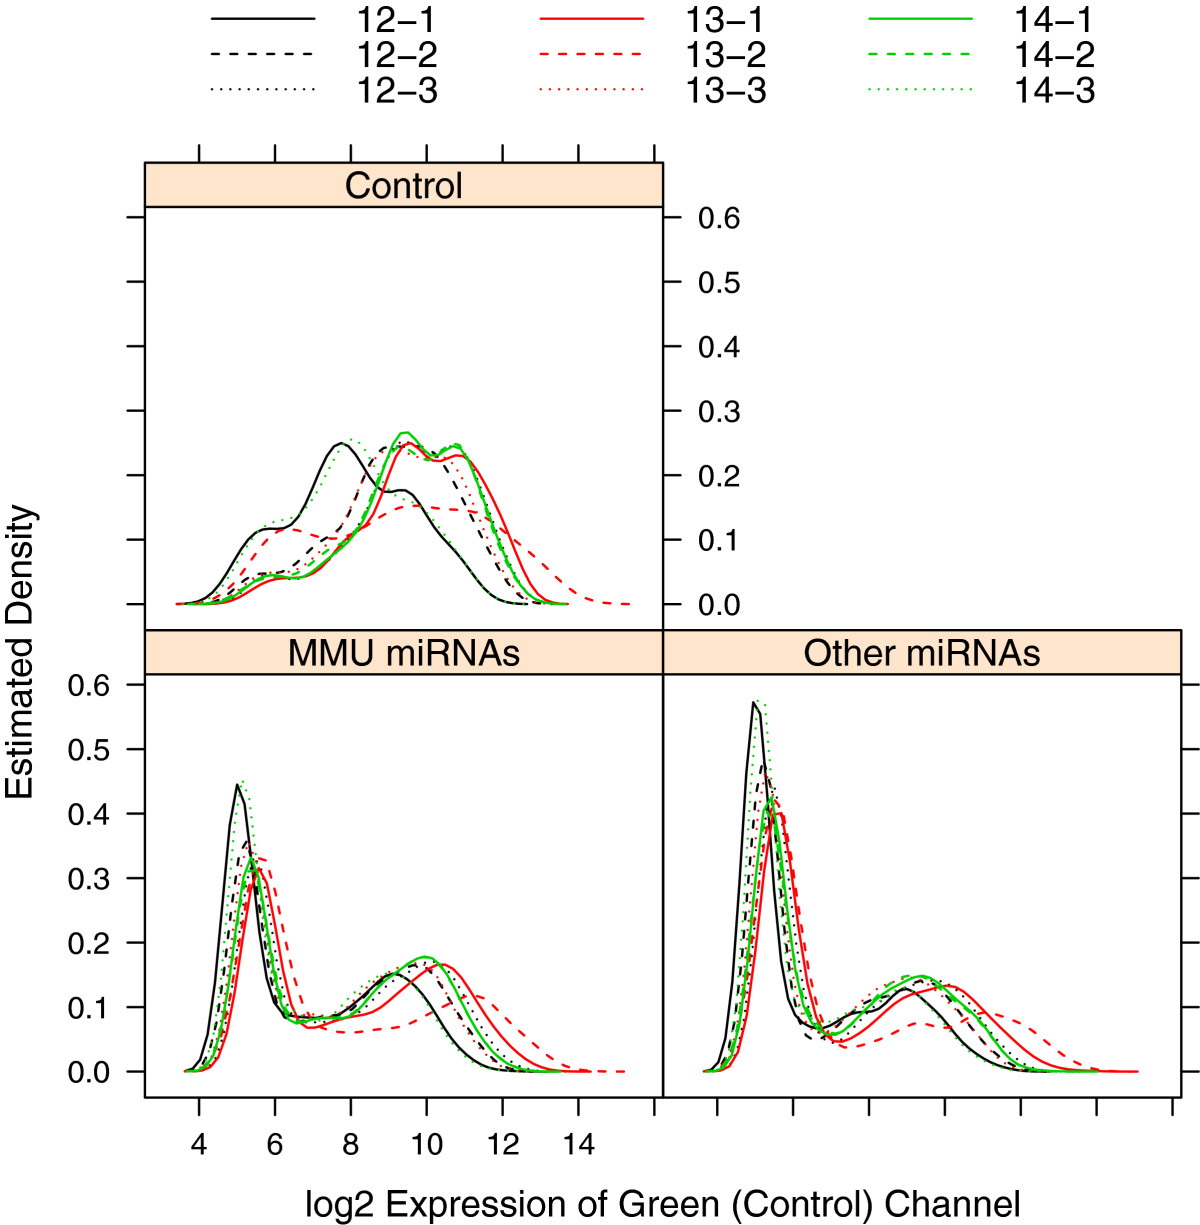 http://static-content.springer.com/image/art%3A10.1186%2F1751-0473-8-1/MediaObjects/13029_2012_Article_89_Fig1_HTML.jpg